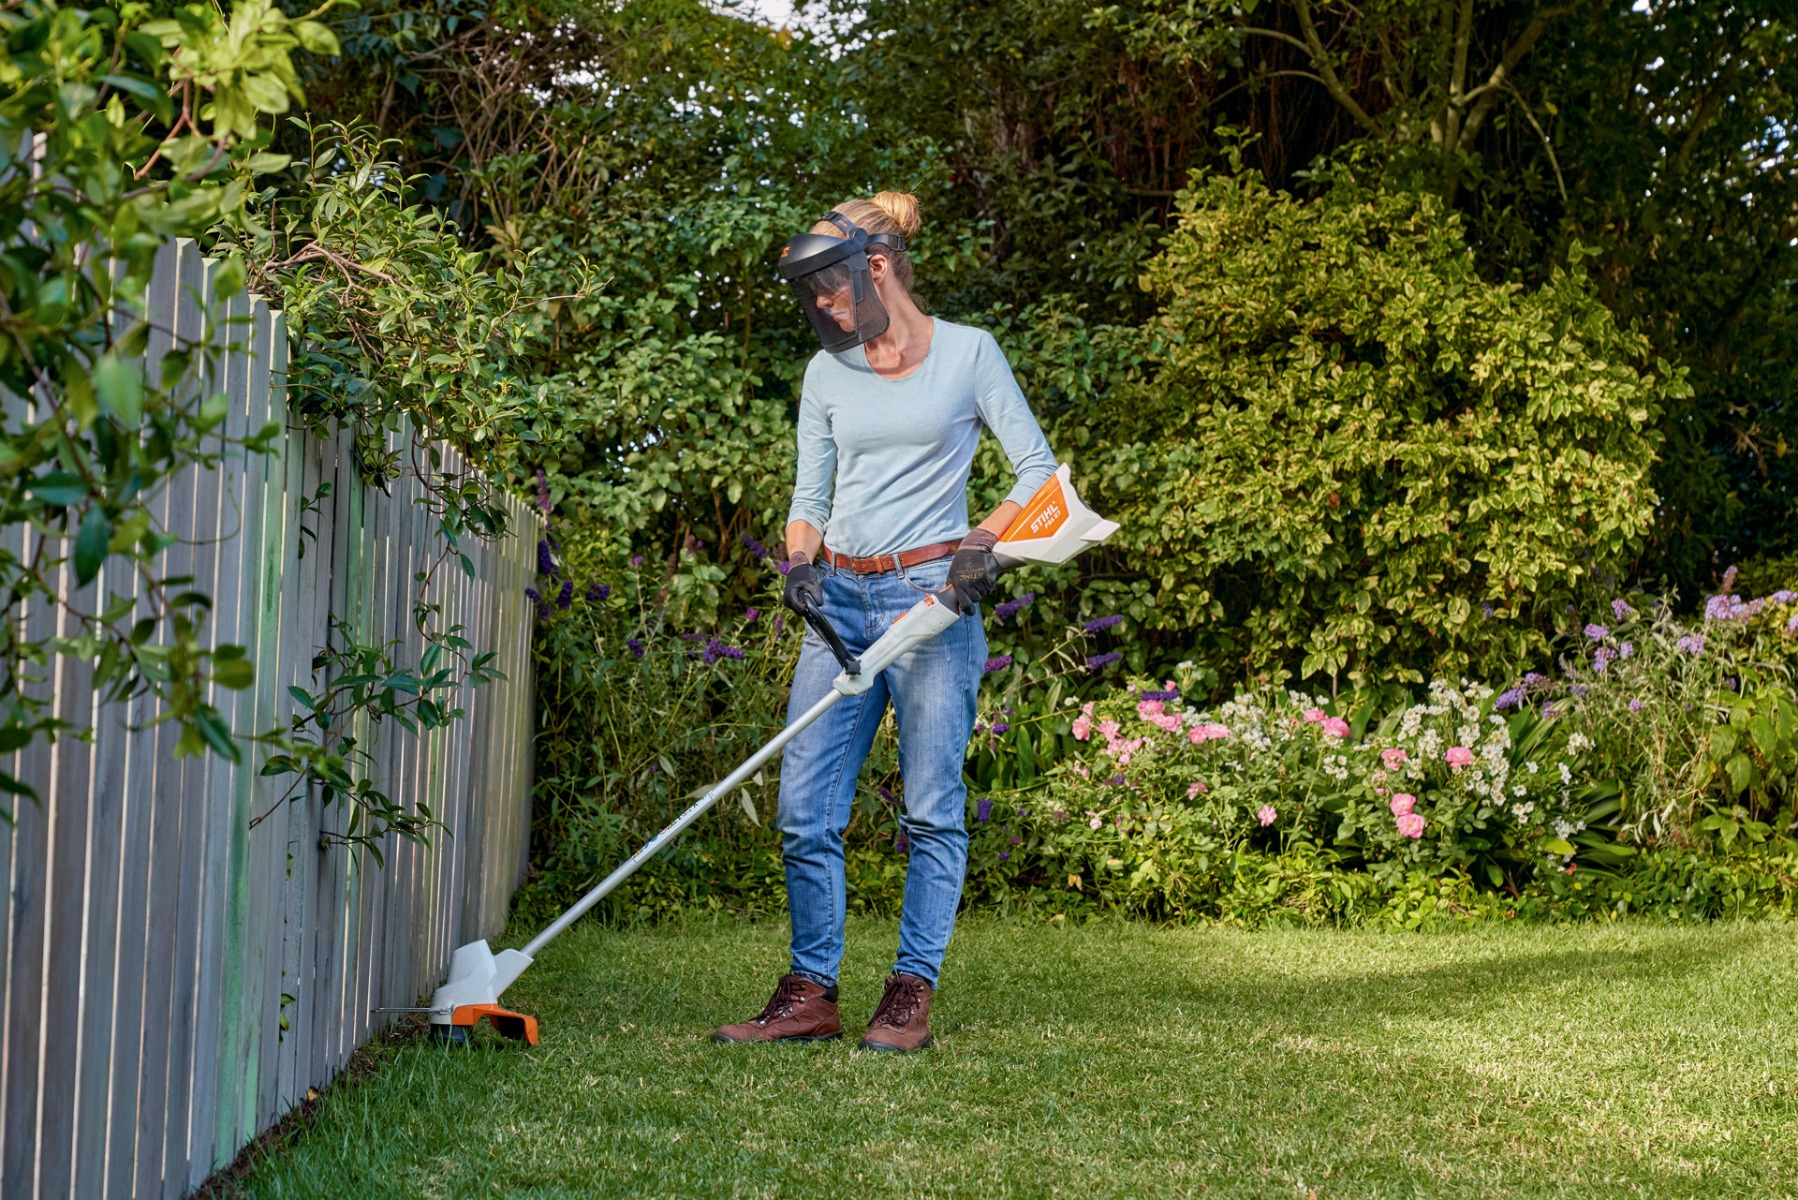 Choosing a line trimmer for your property